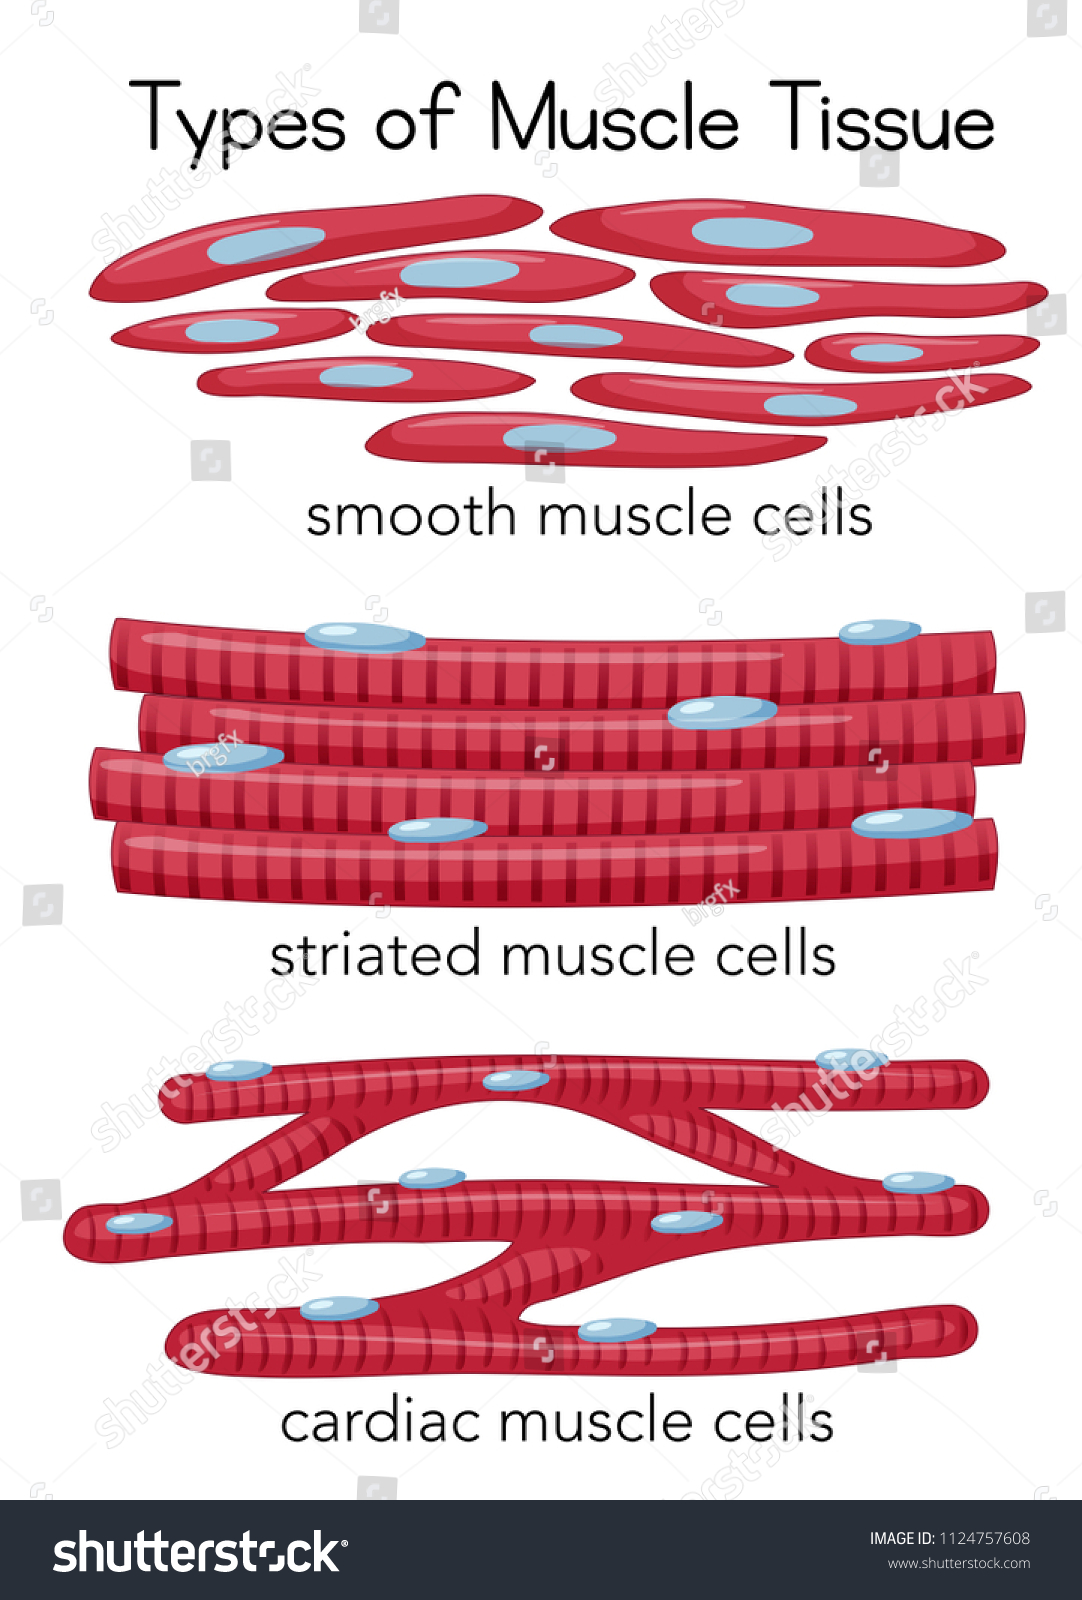 Types Muscle Tissue Illustration Stock Vector Royalty Free